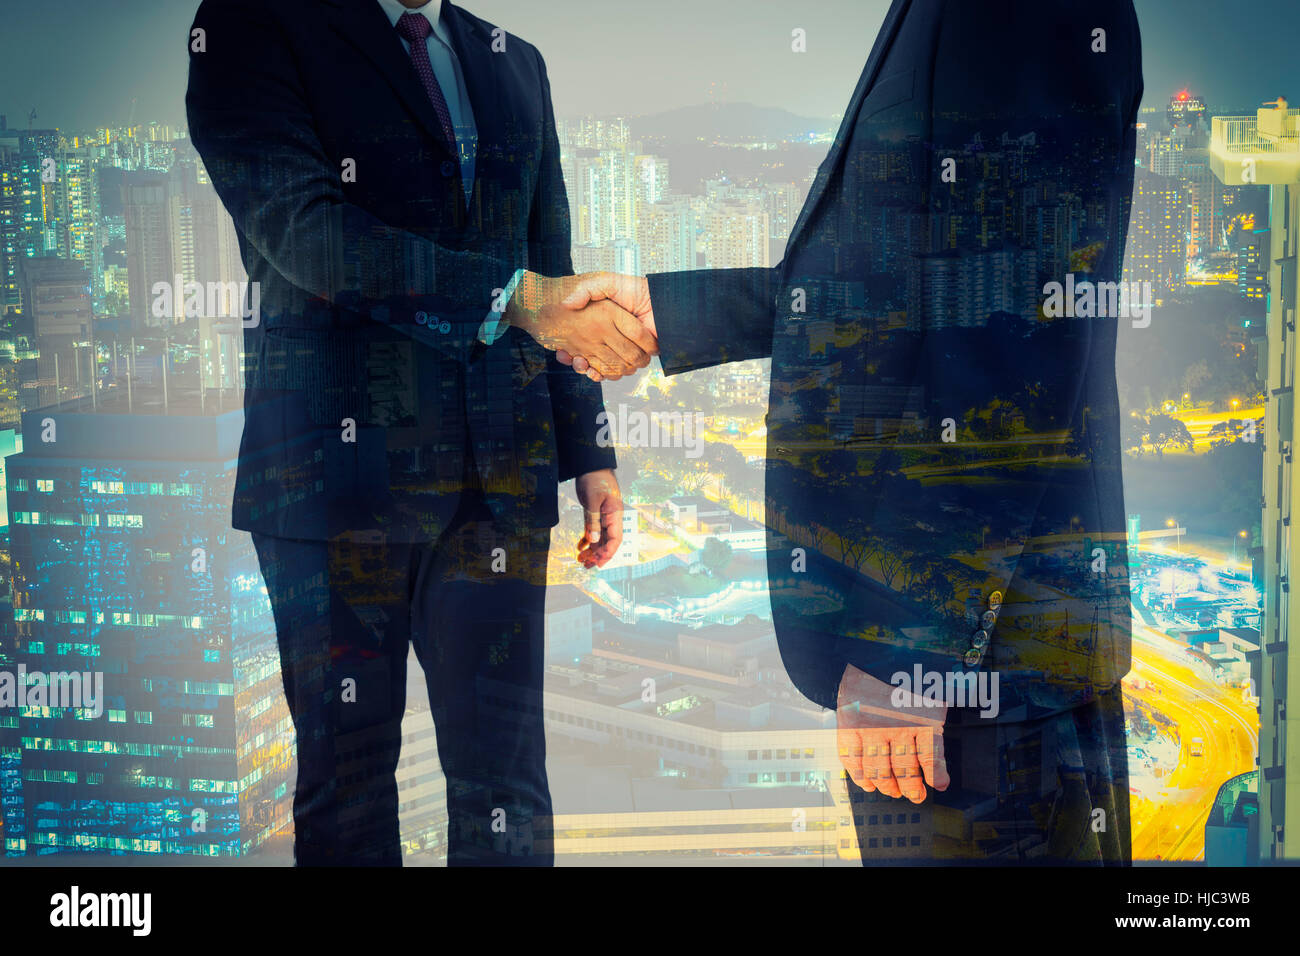 double exposure of commitment from 2 businessman and night cityscape of blue time - can use to display or montage - Stock Image